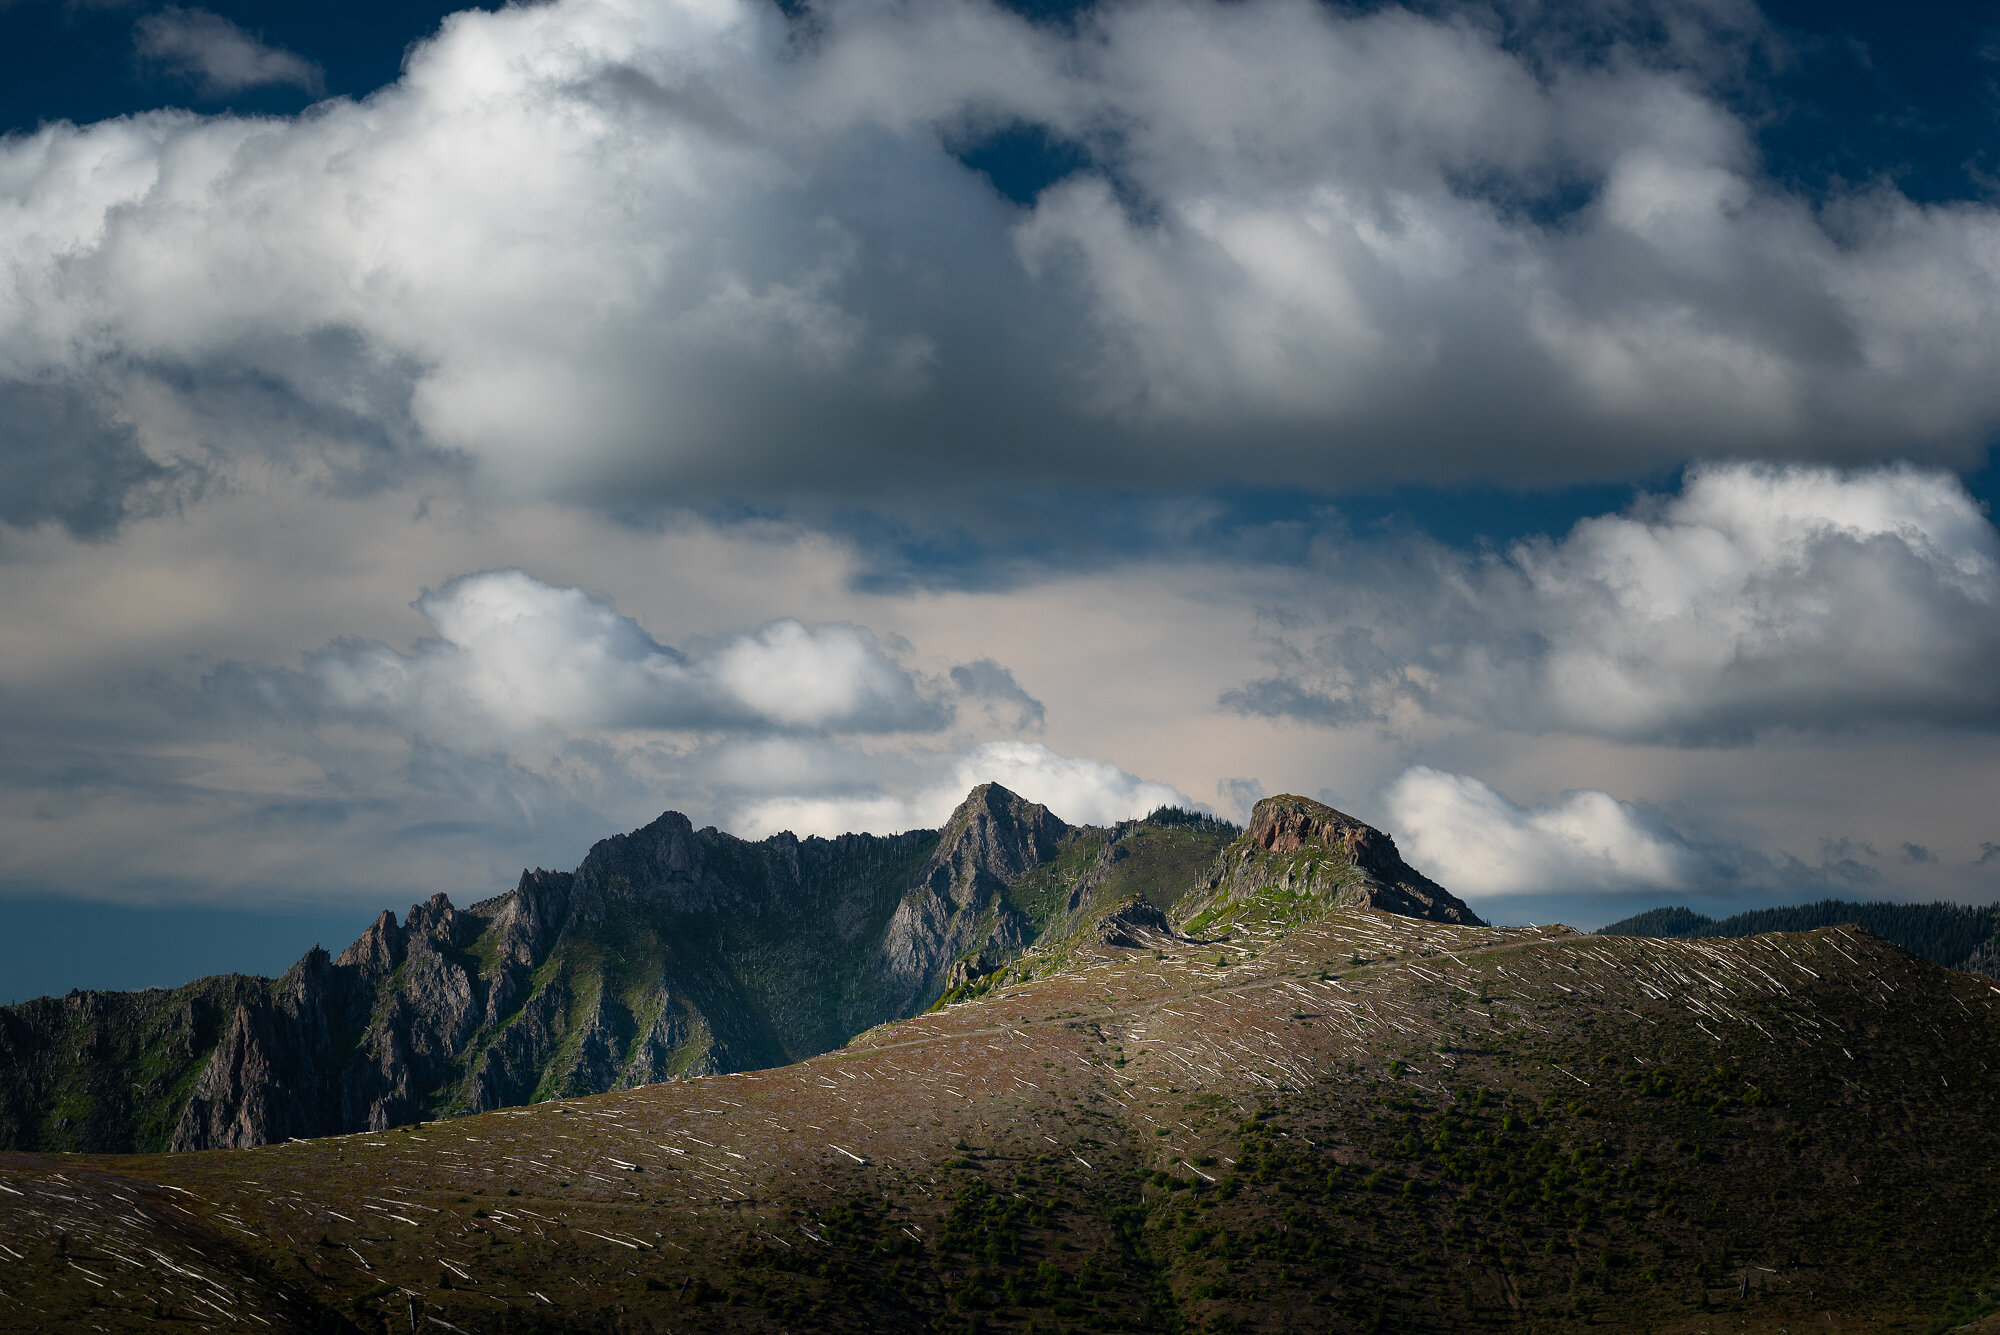 Mount St. Helens Photography: 'The Remnants'